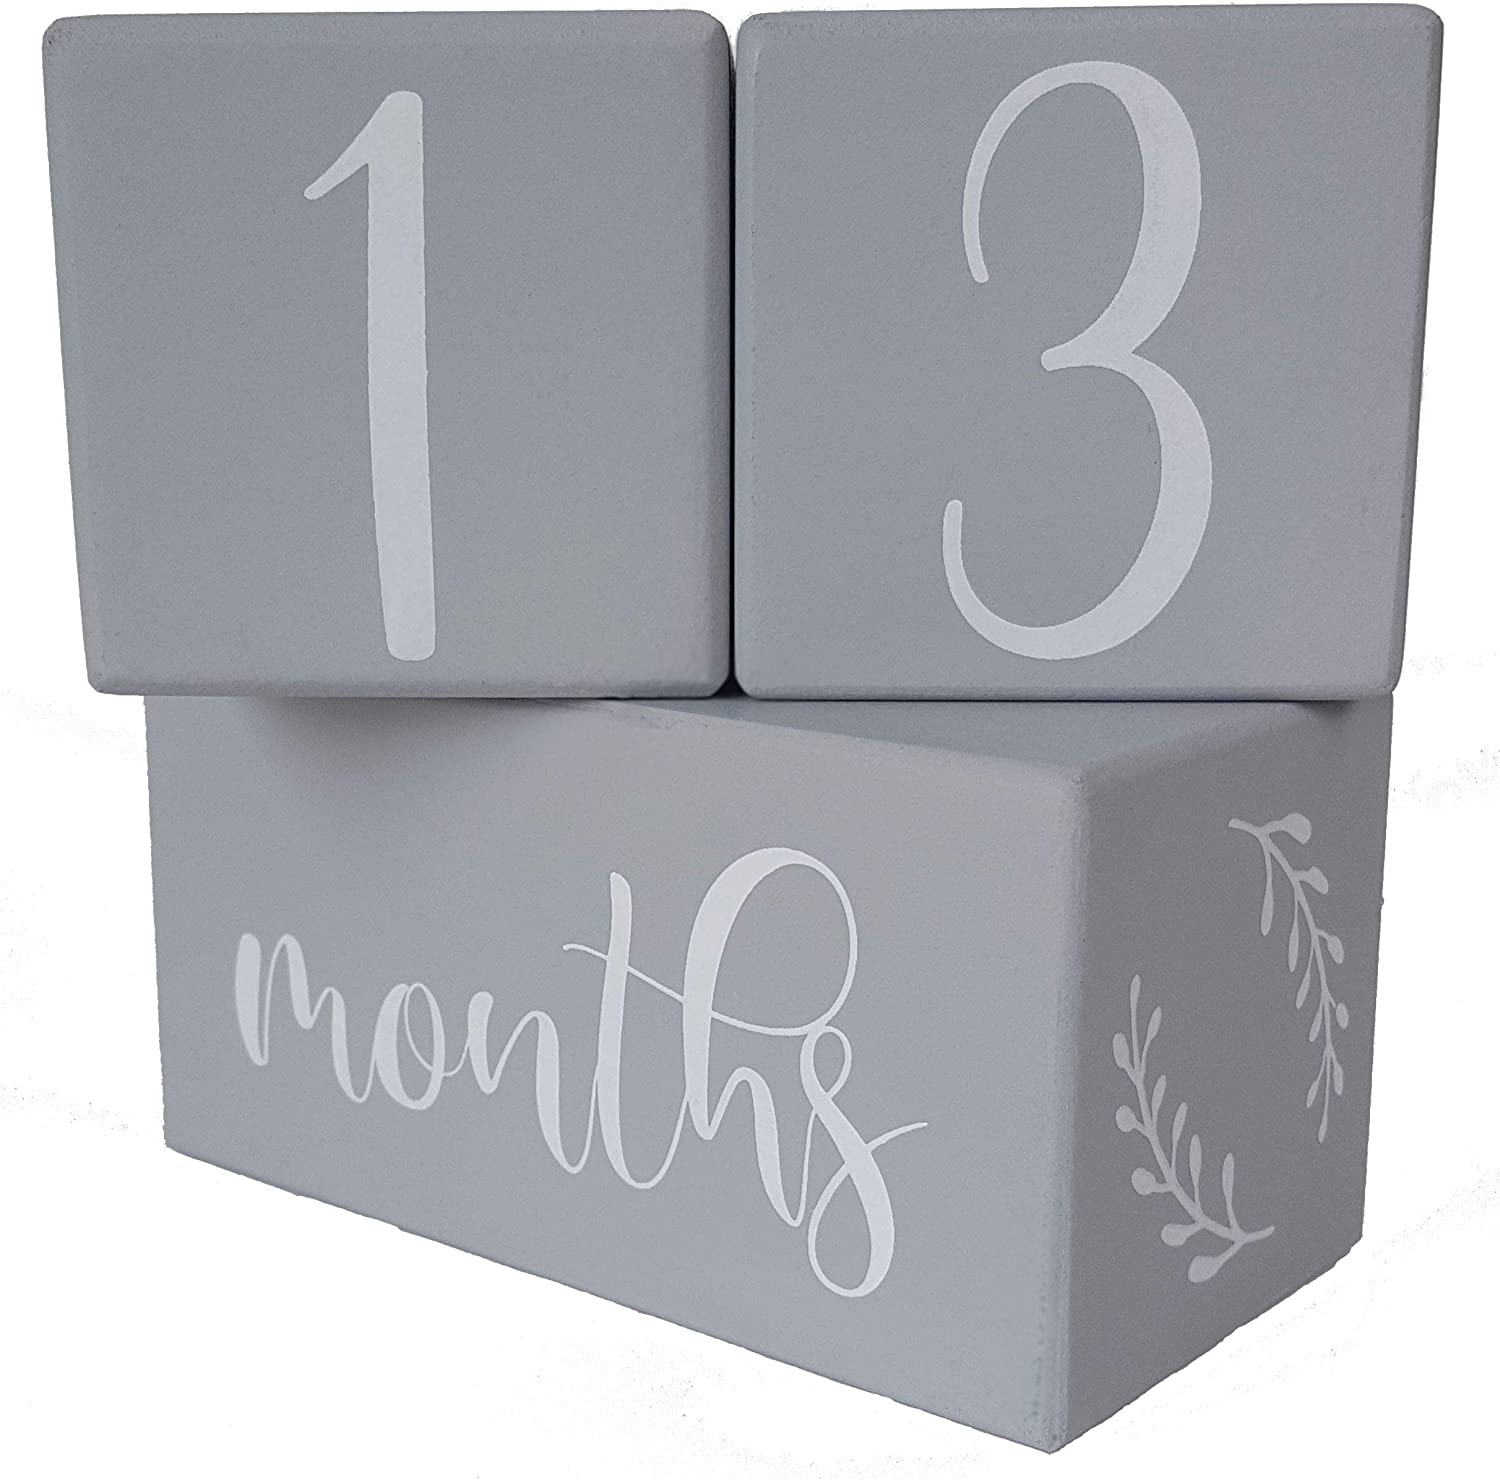 Premium Milestone Age Blocks by Frolickly – Wood Set with Weeks Months Years Grade – Gender Neutral Gray is Perfect for a Baby Boy or Girl – Baby Showers, Photo Props, and Pregnancy Countdowns